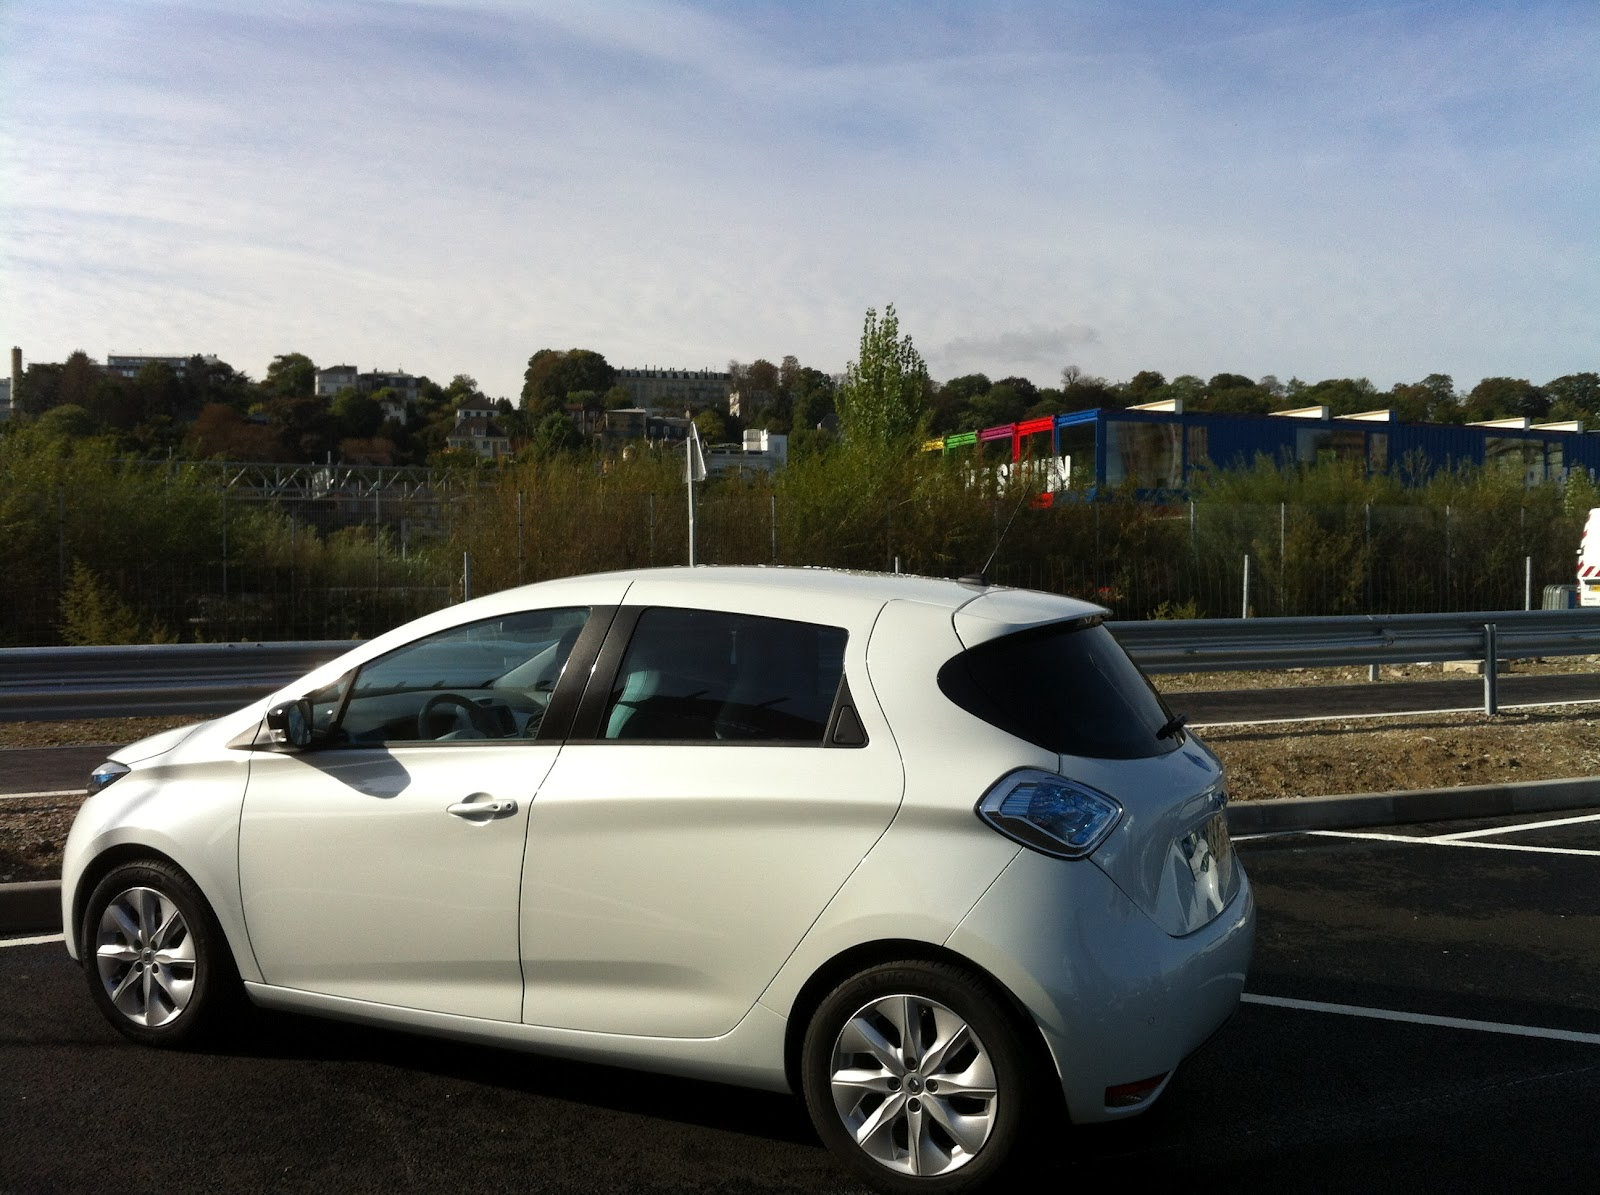 Garage Peugeot Meudon My E Life Now Renault Zoe Test Drive My Video